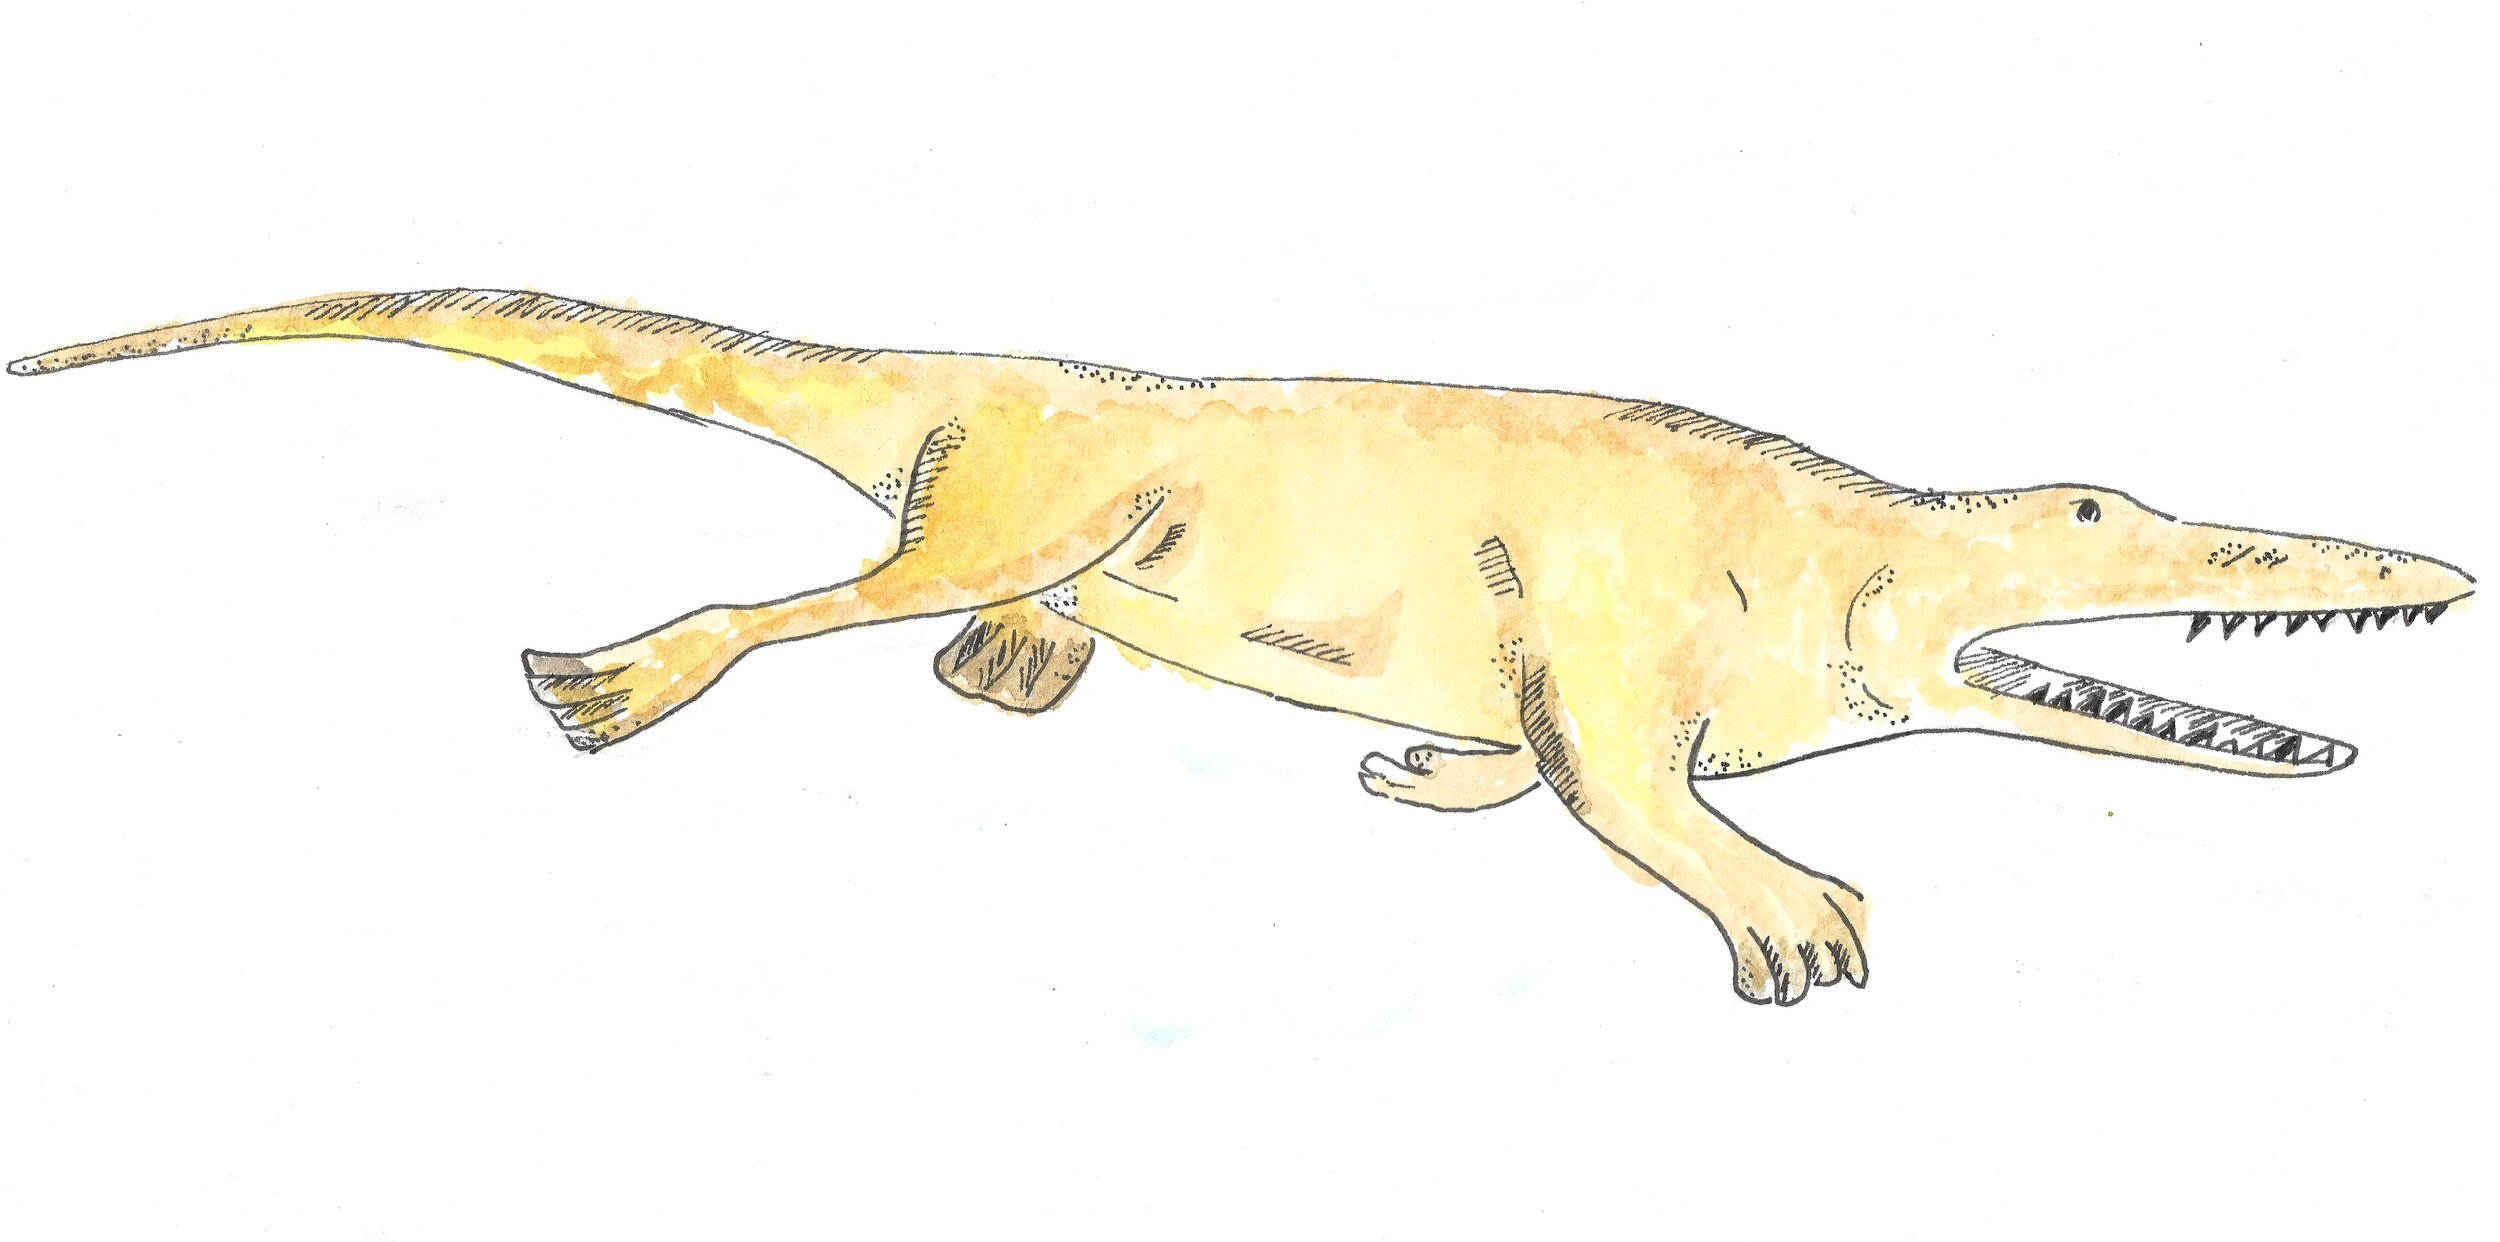 Remingtonocetus was an ancestral whale with a crocodile-like snout and short limbs.